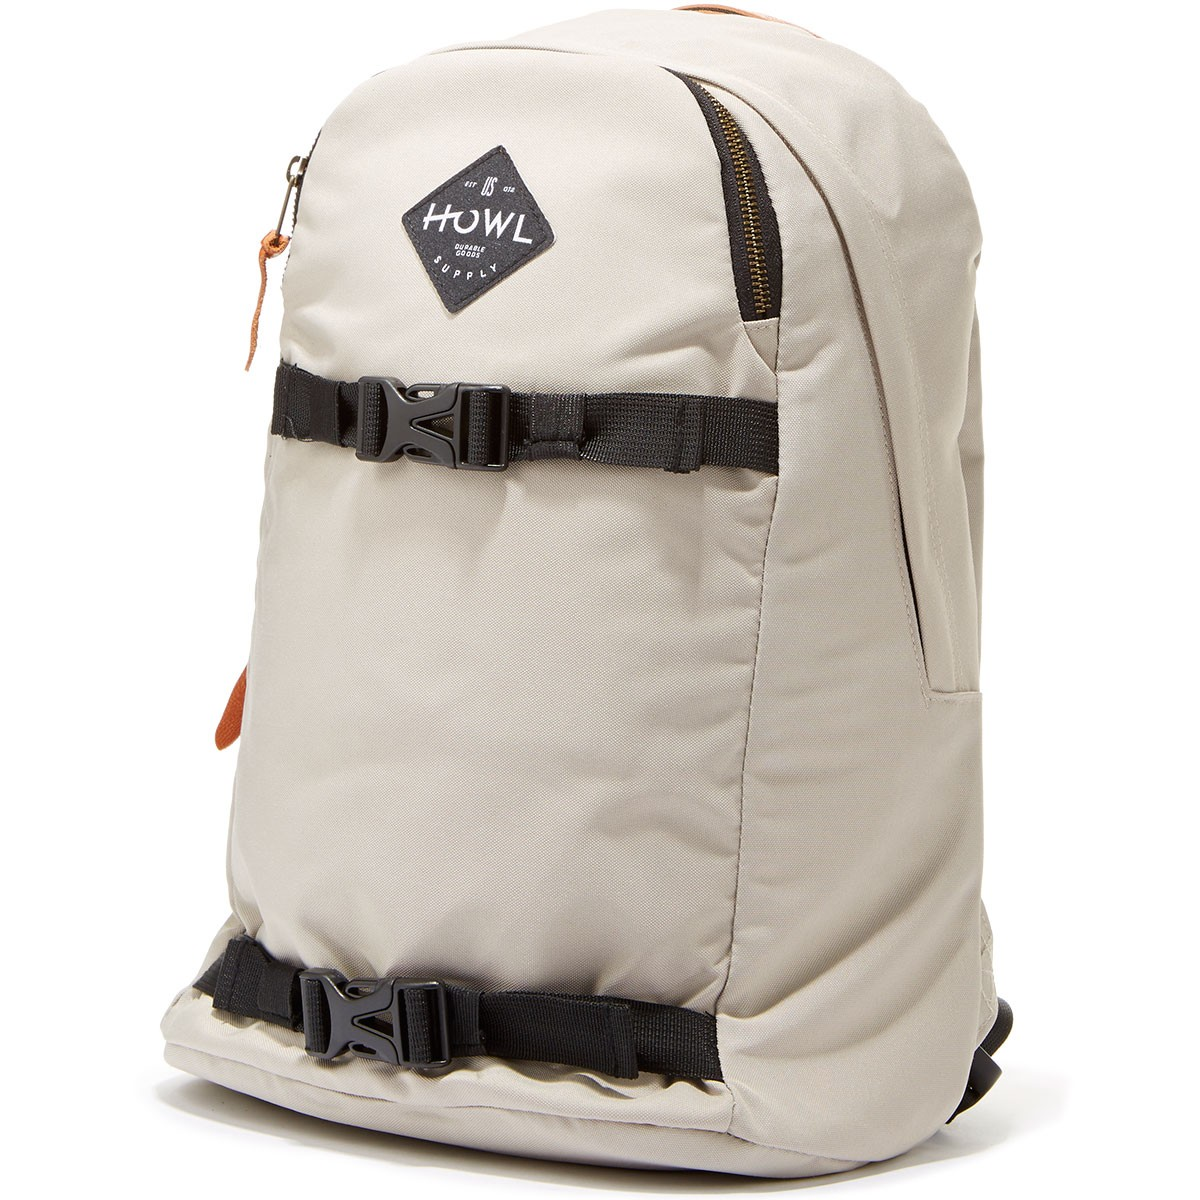 Howl Session Backpack - Khaki